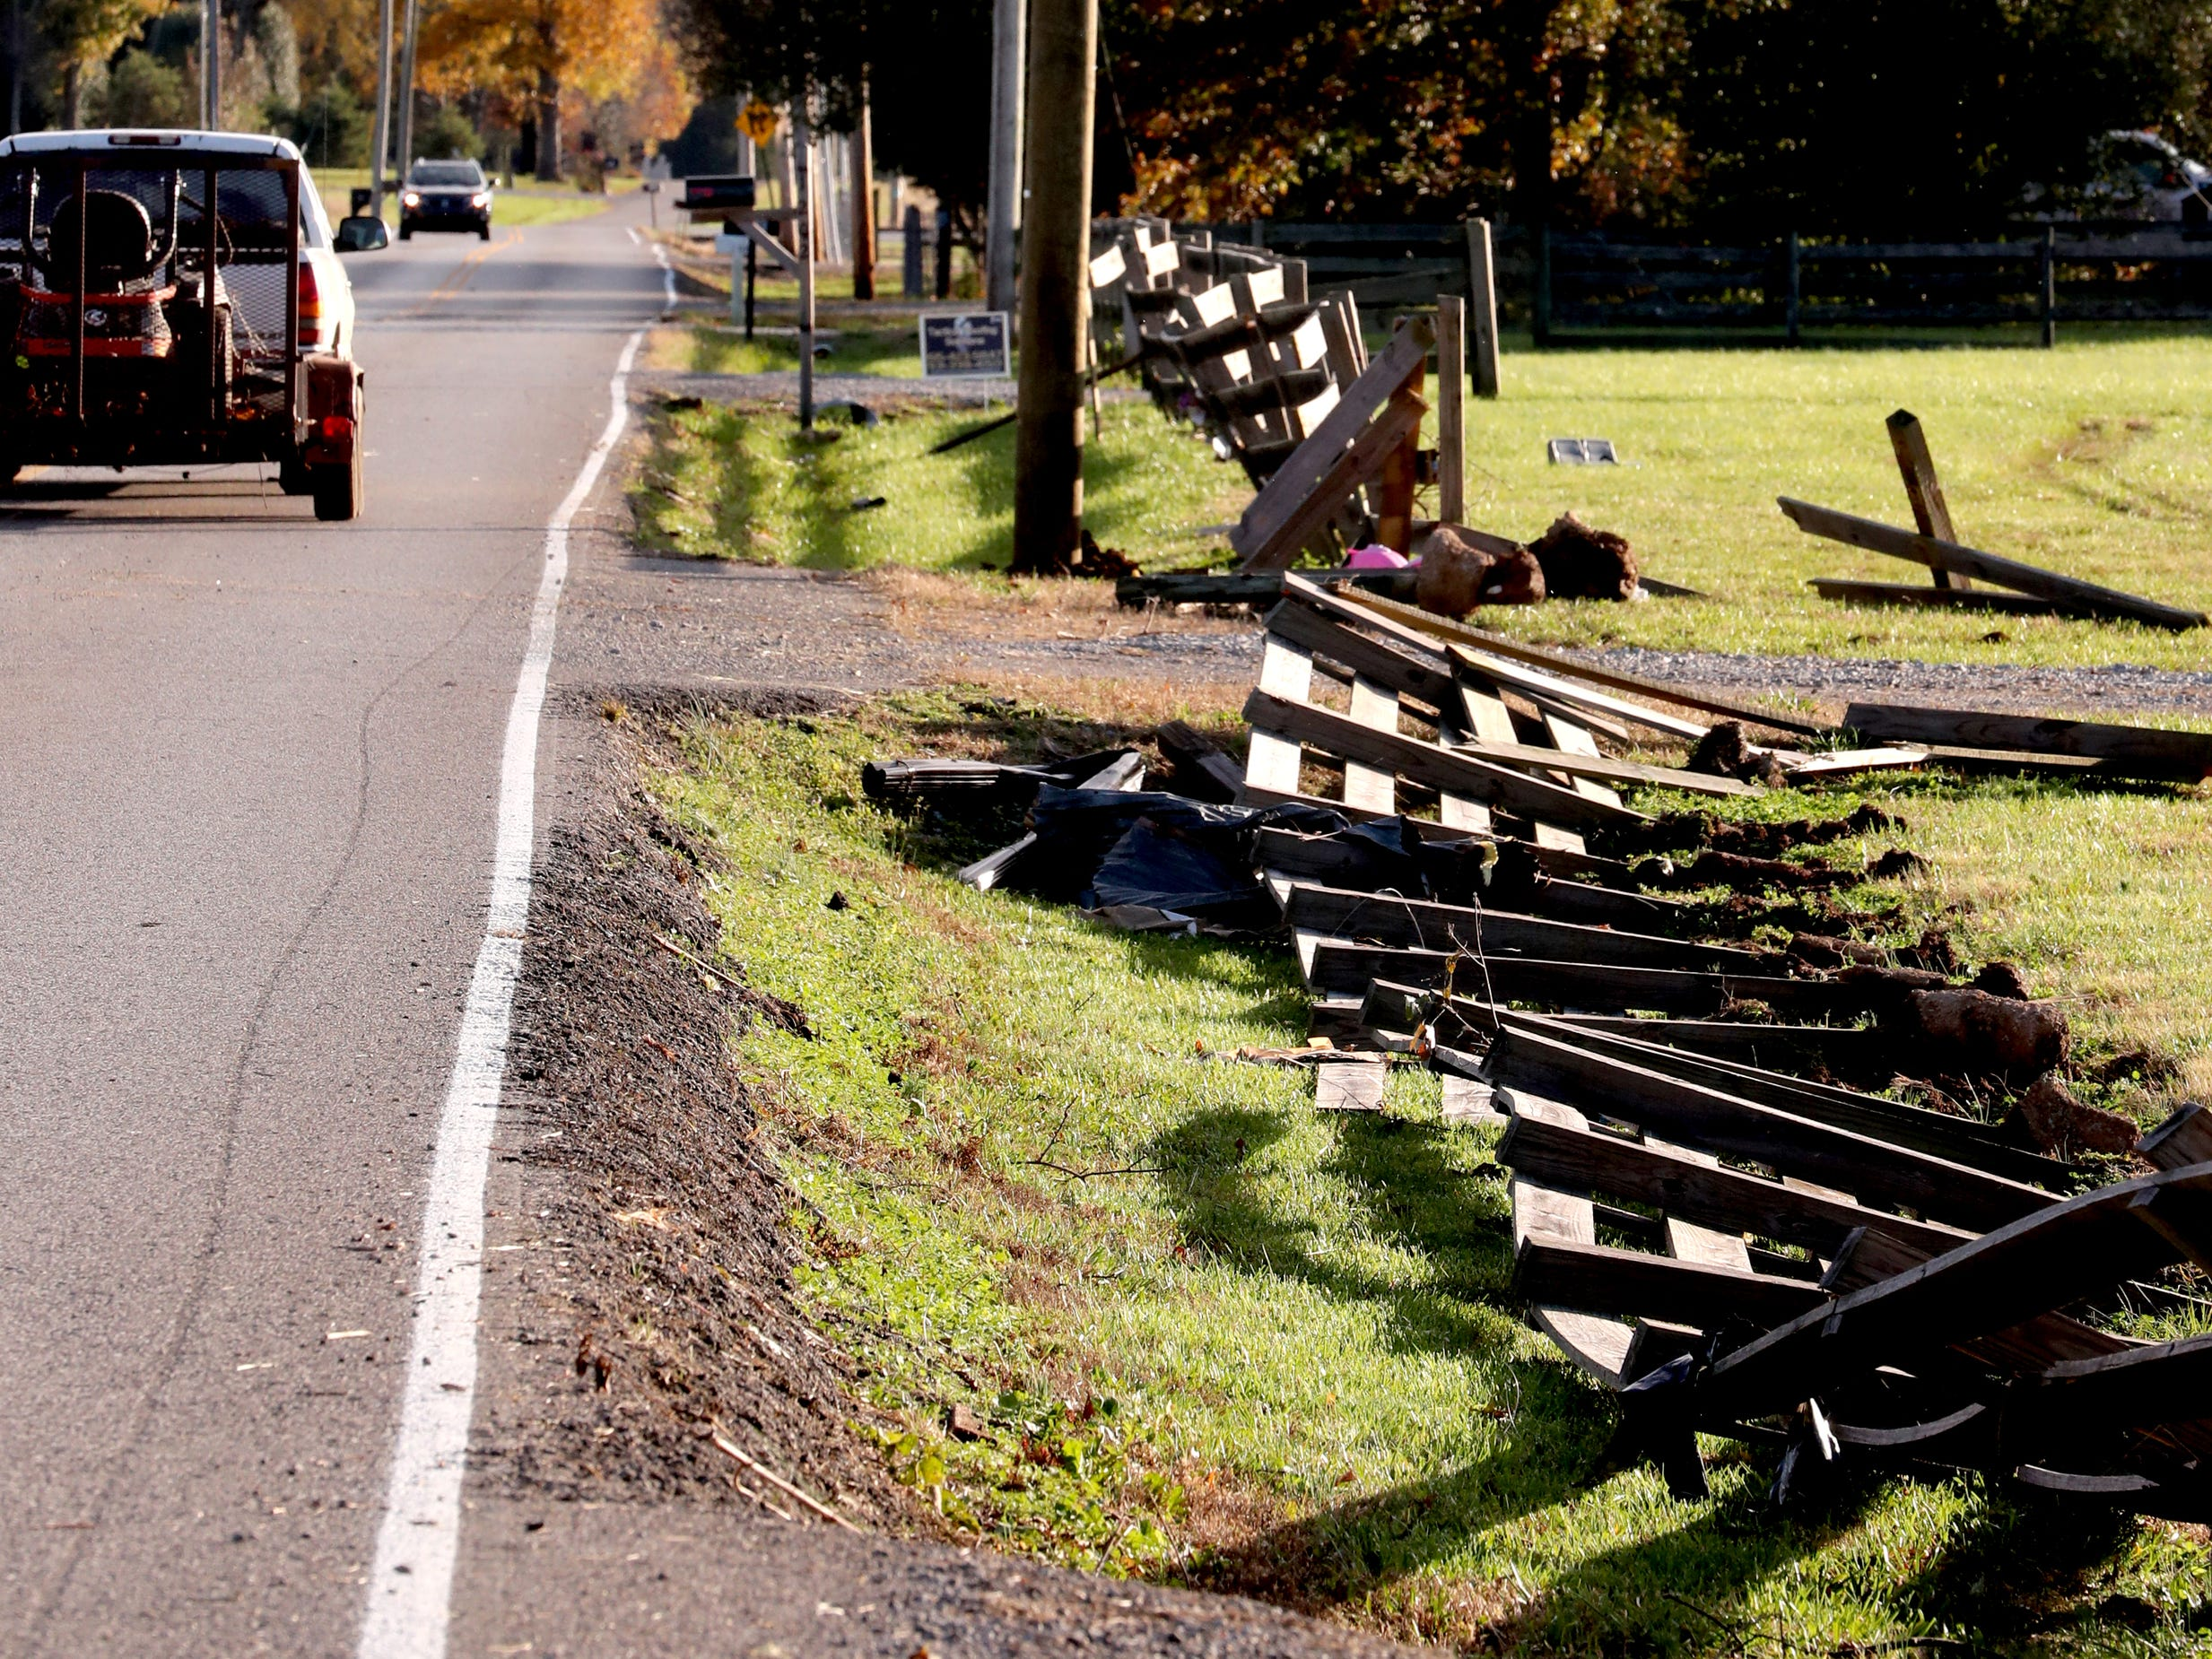 A wooden fence that runs along Rock Springs Midland Road in Christiana, Tenn. was knocked down due to a tornado that hit the area early on Tuesday, Nov. 6, 2018.